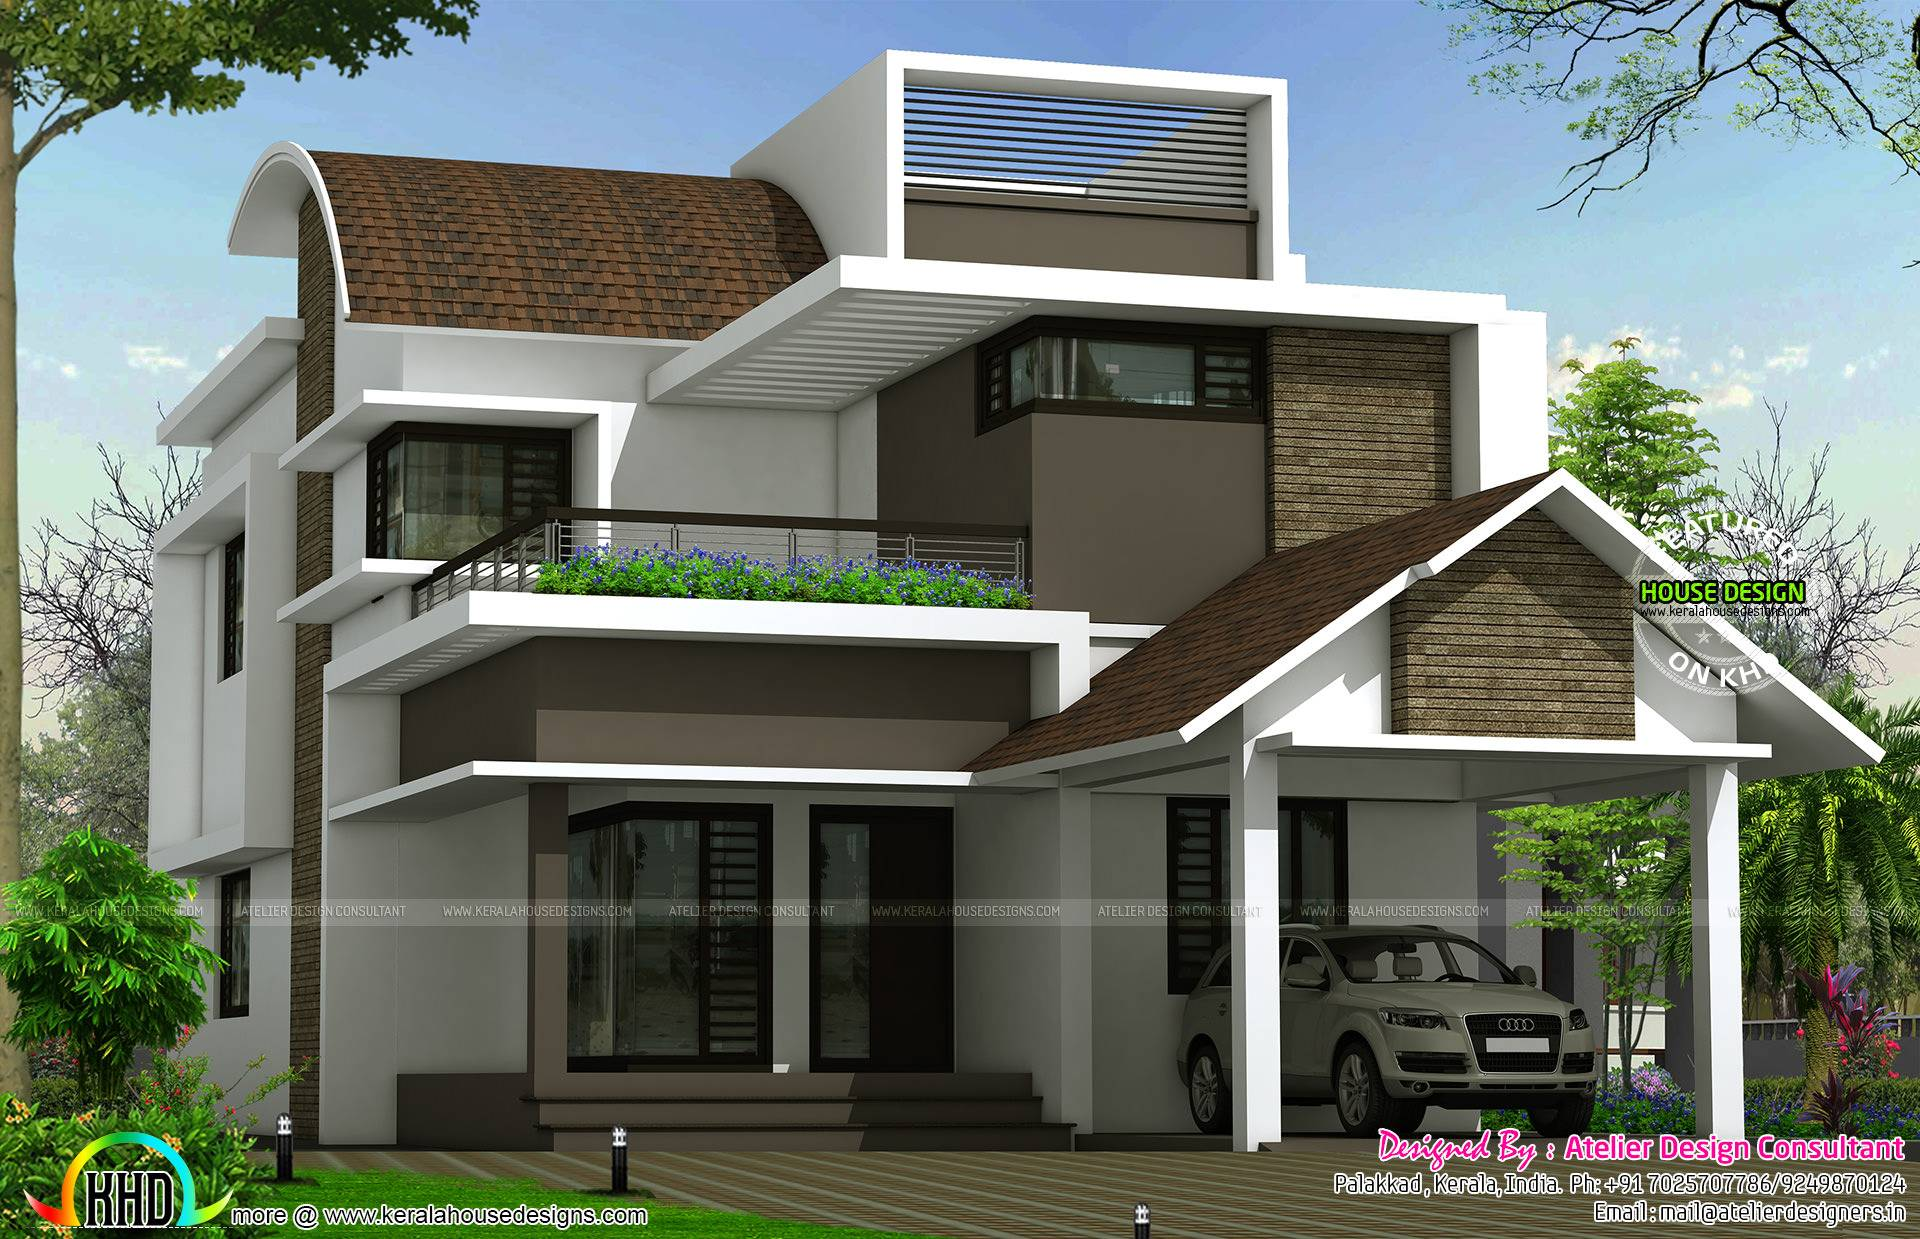 Curved Roof Mix Contemporary Home Kerala House Plans 136248